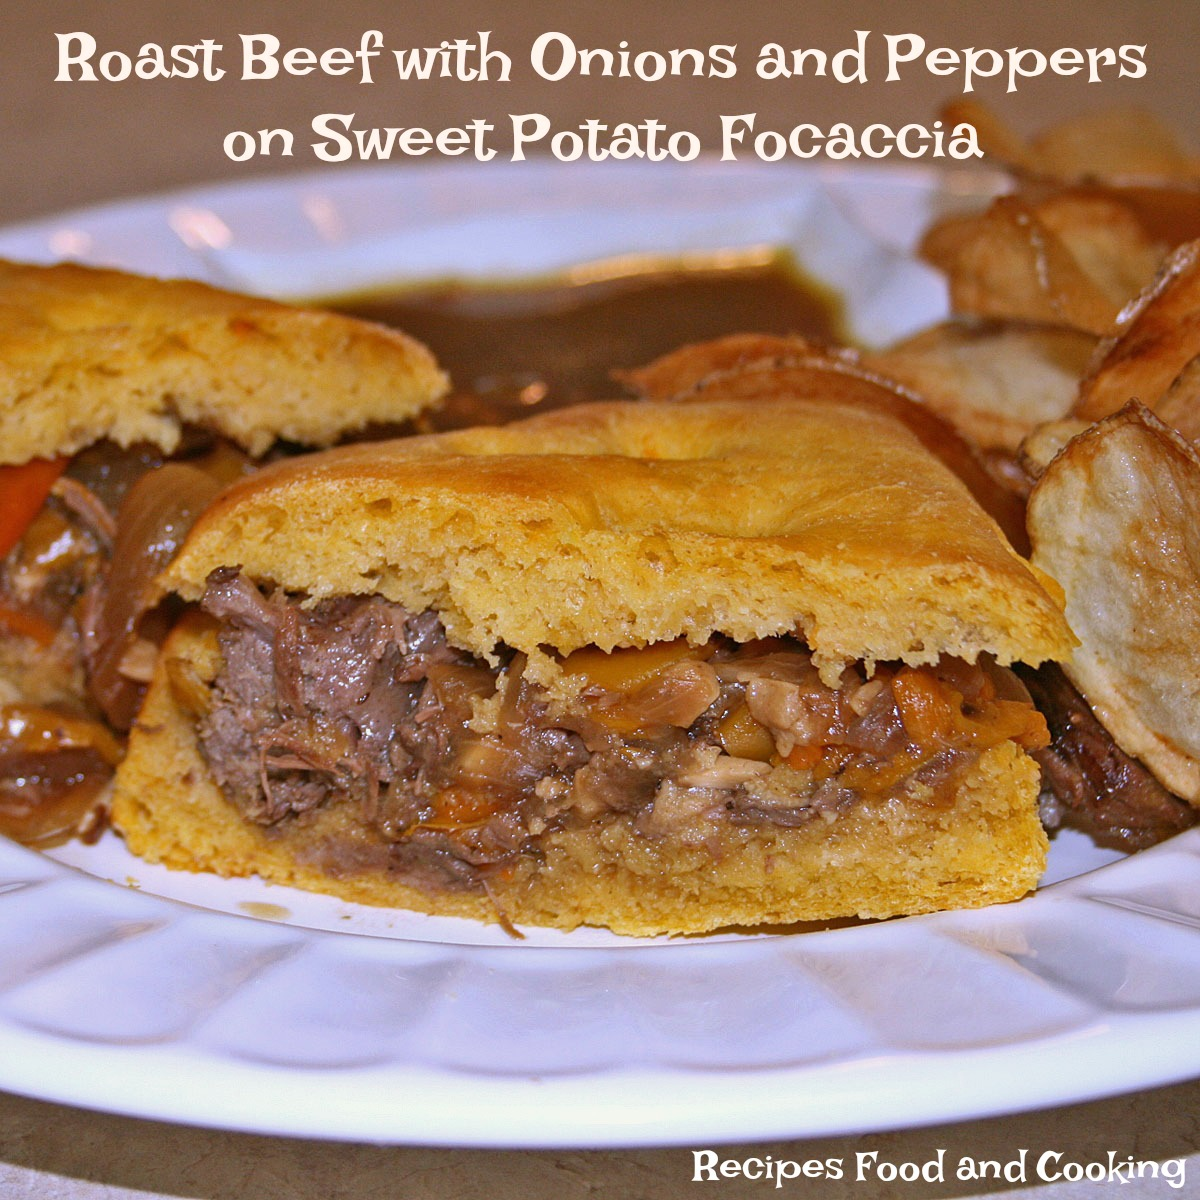 Roast Beef with Onions and Peppers